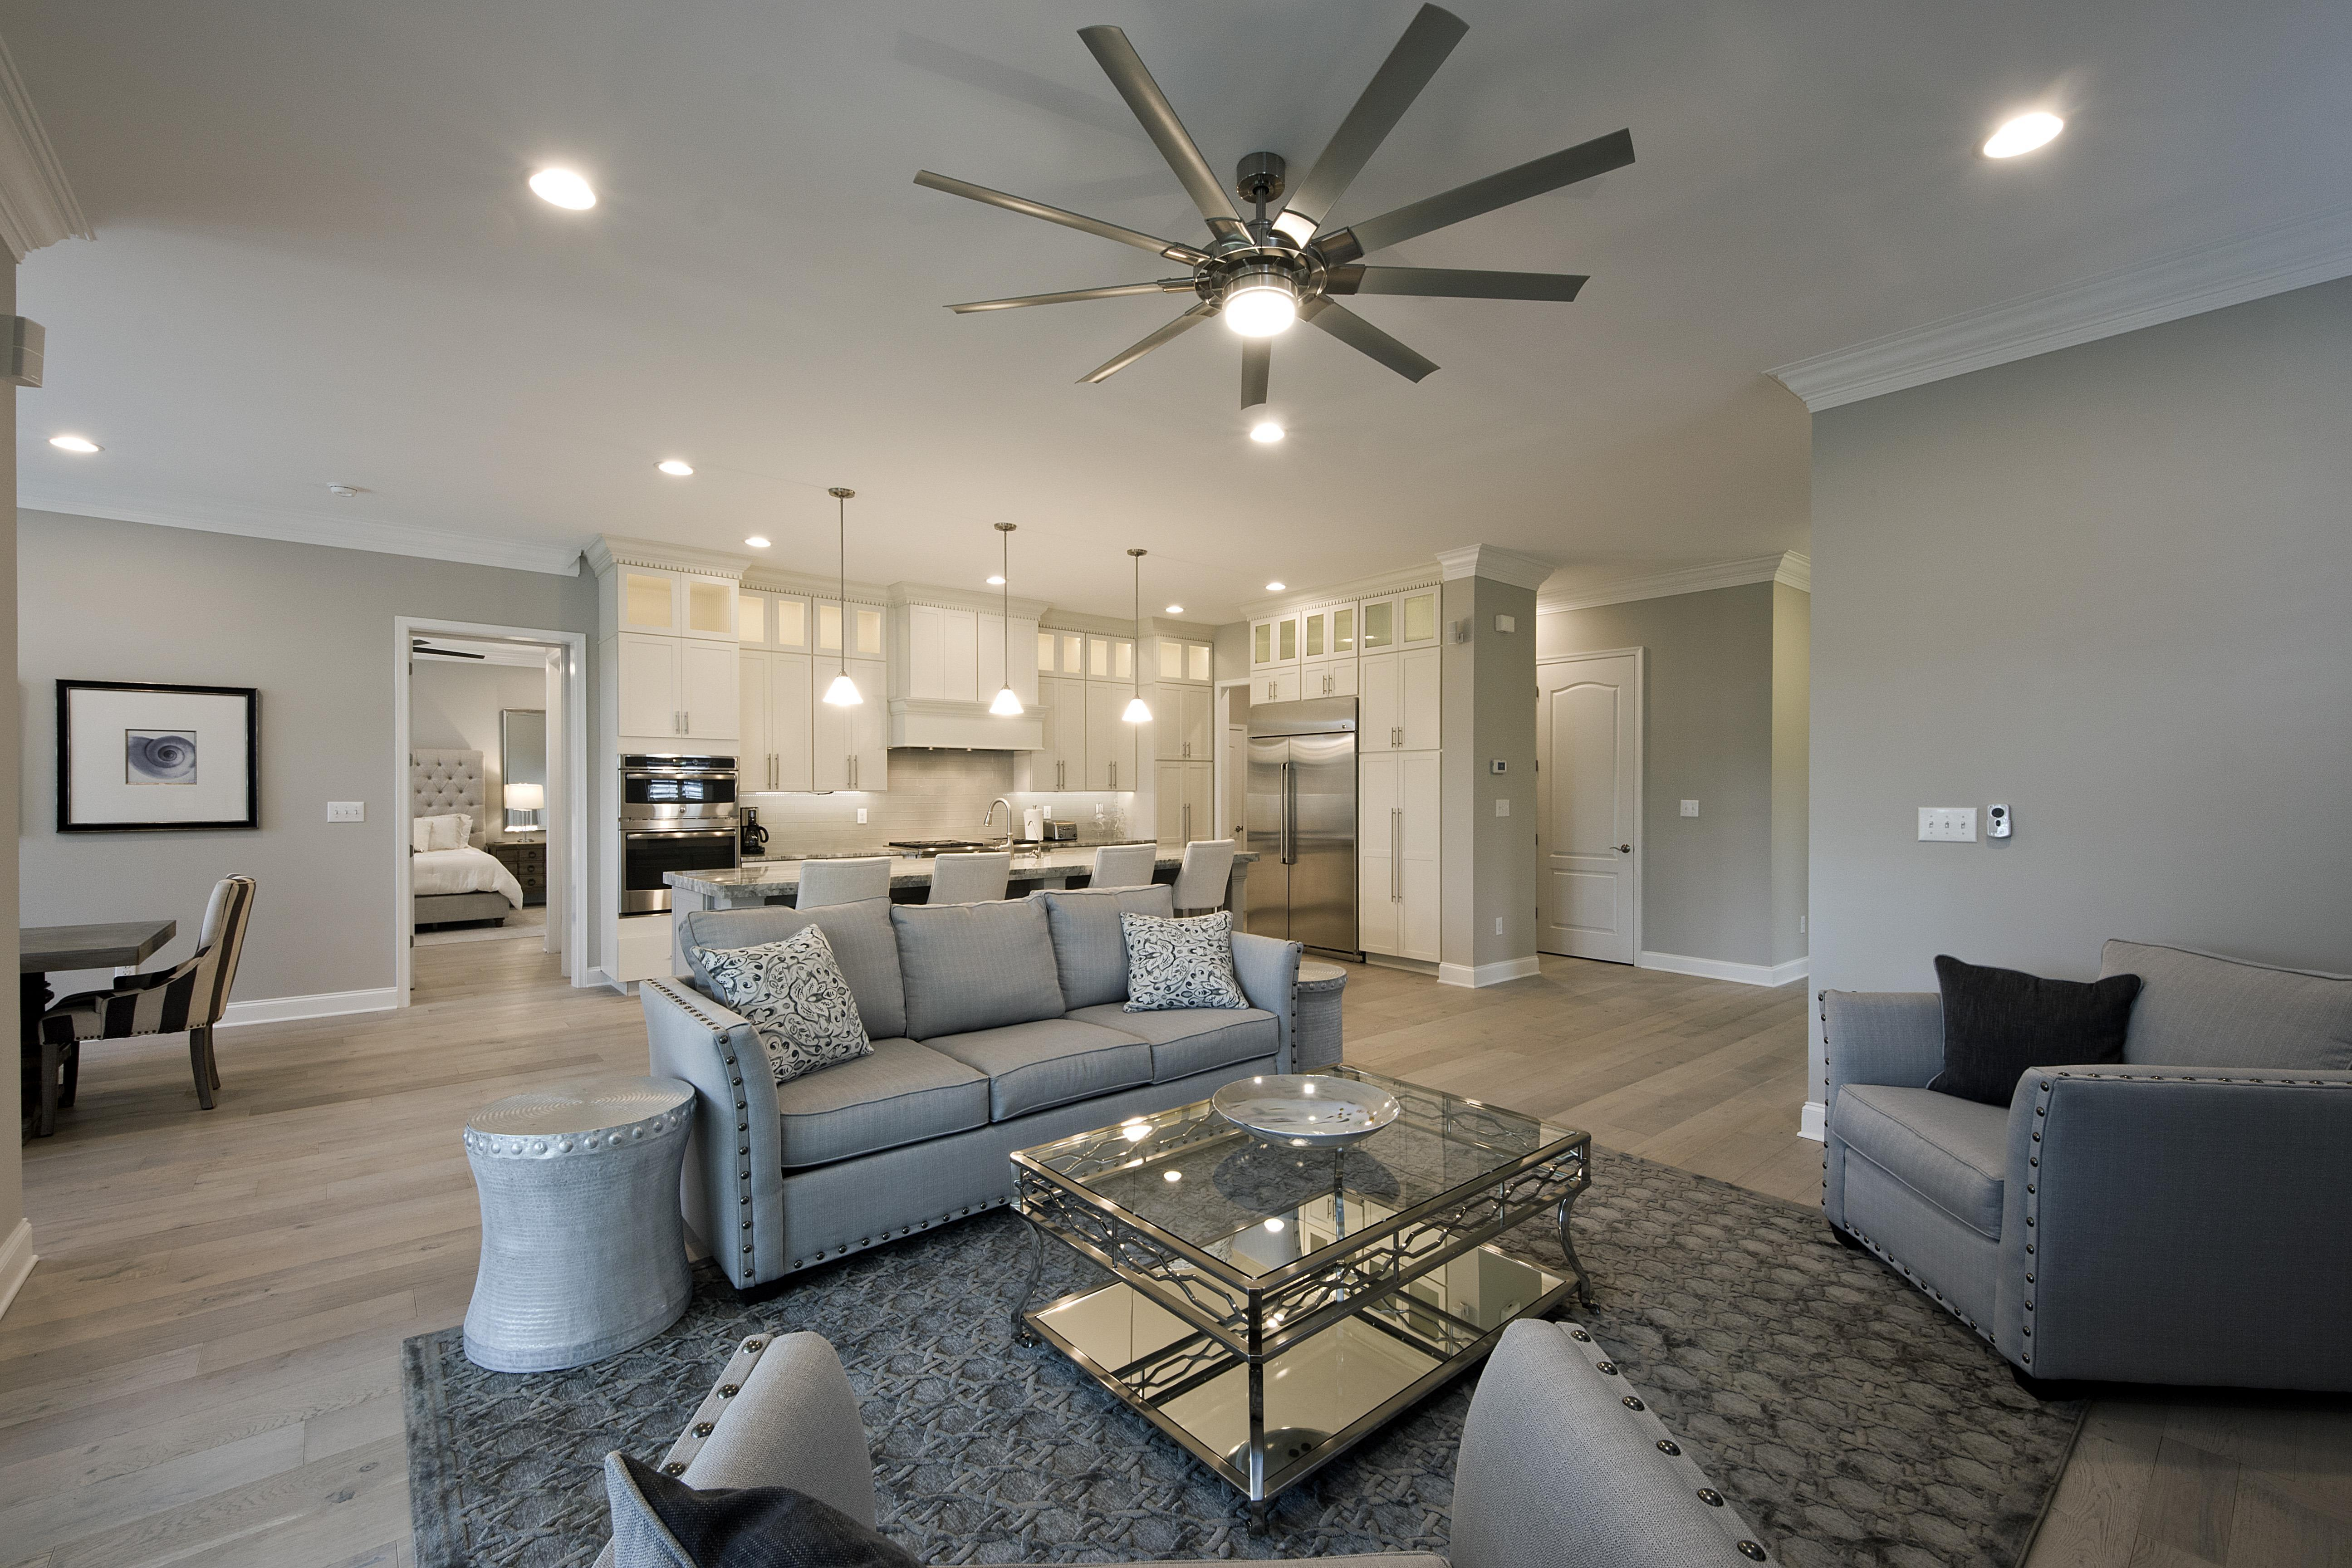 Living Area featured in The Georgetown By Ashburn Homes in Sussex, DE